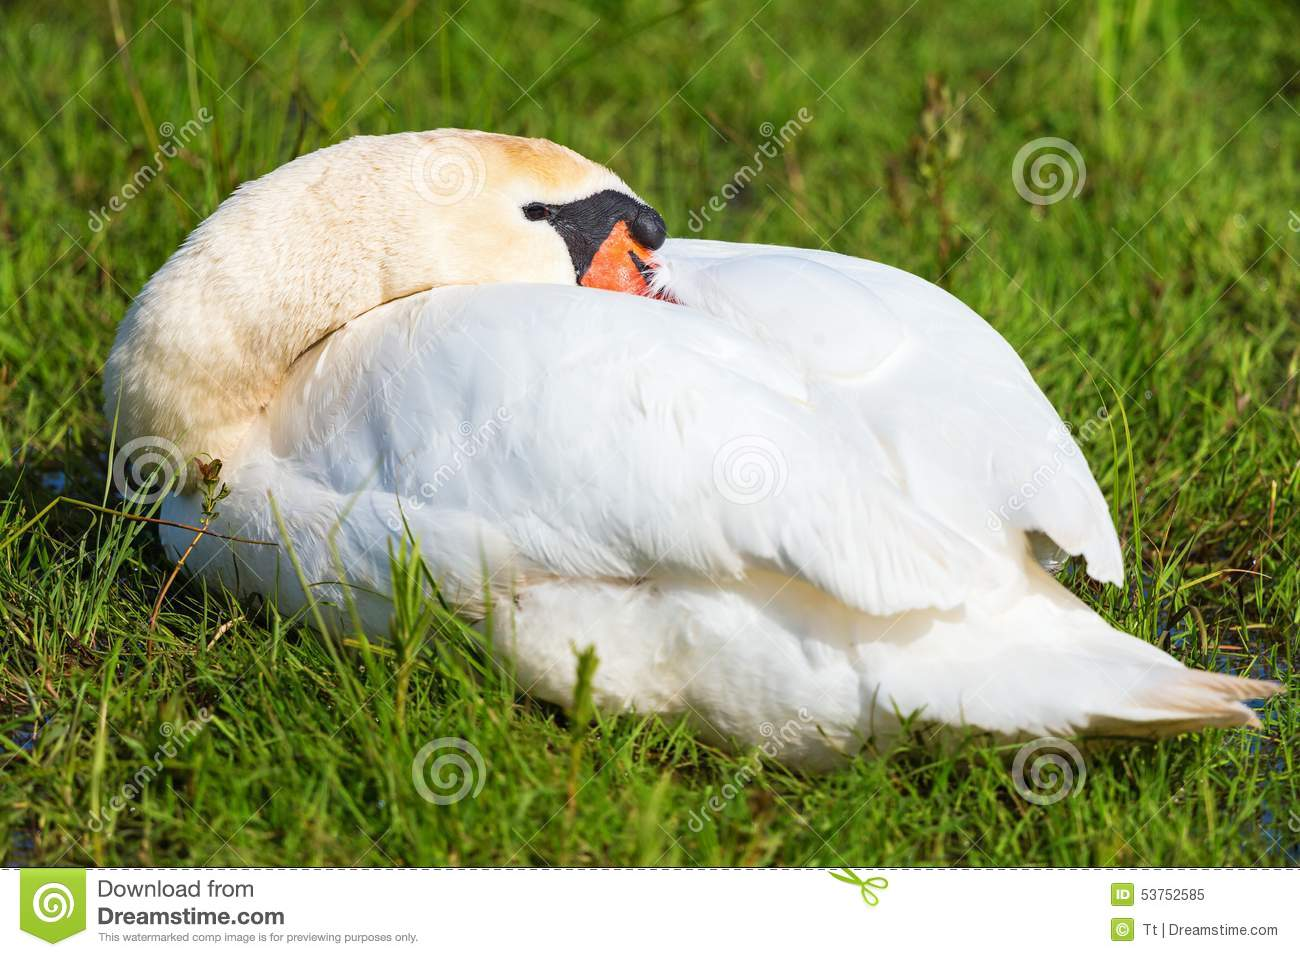 The Sleeping Swans >> Mute Swan Sleep Stock Image Image Of Vegetation Grass 53752585